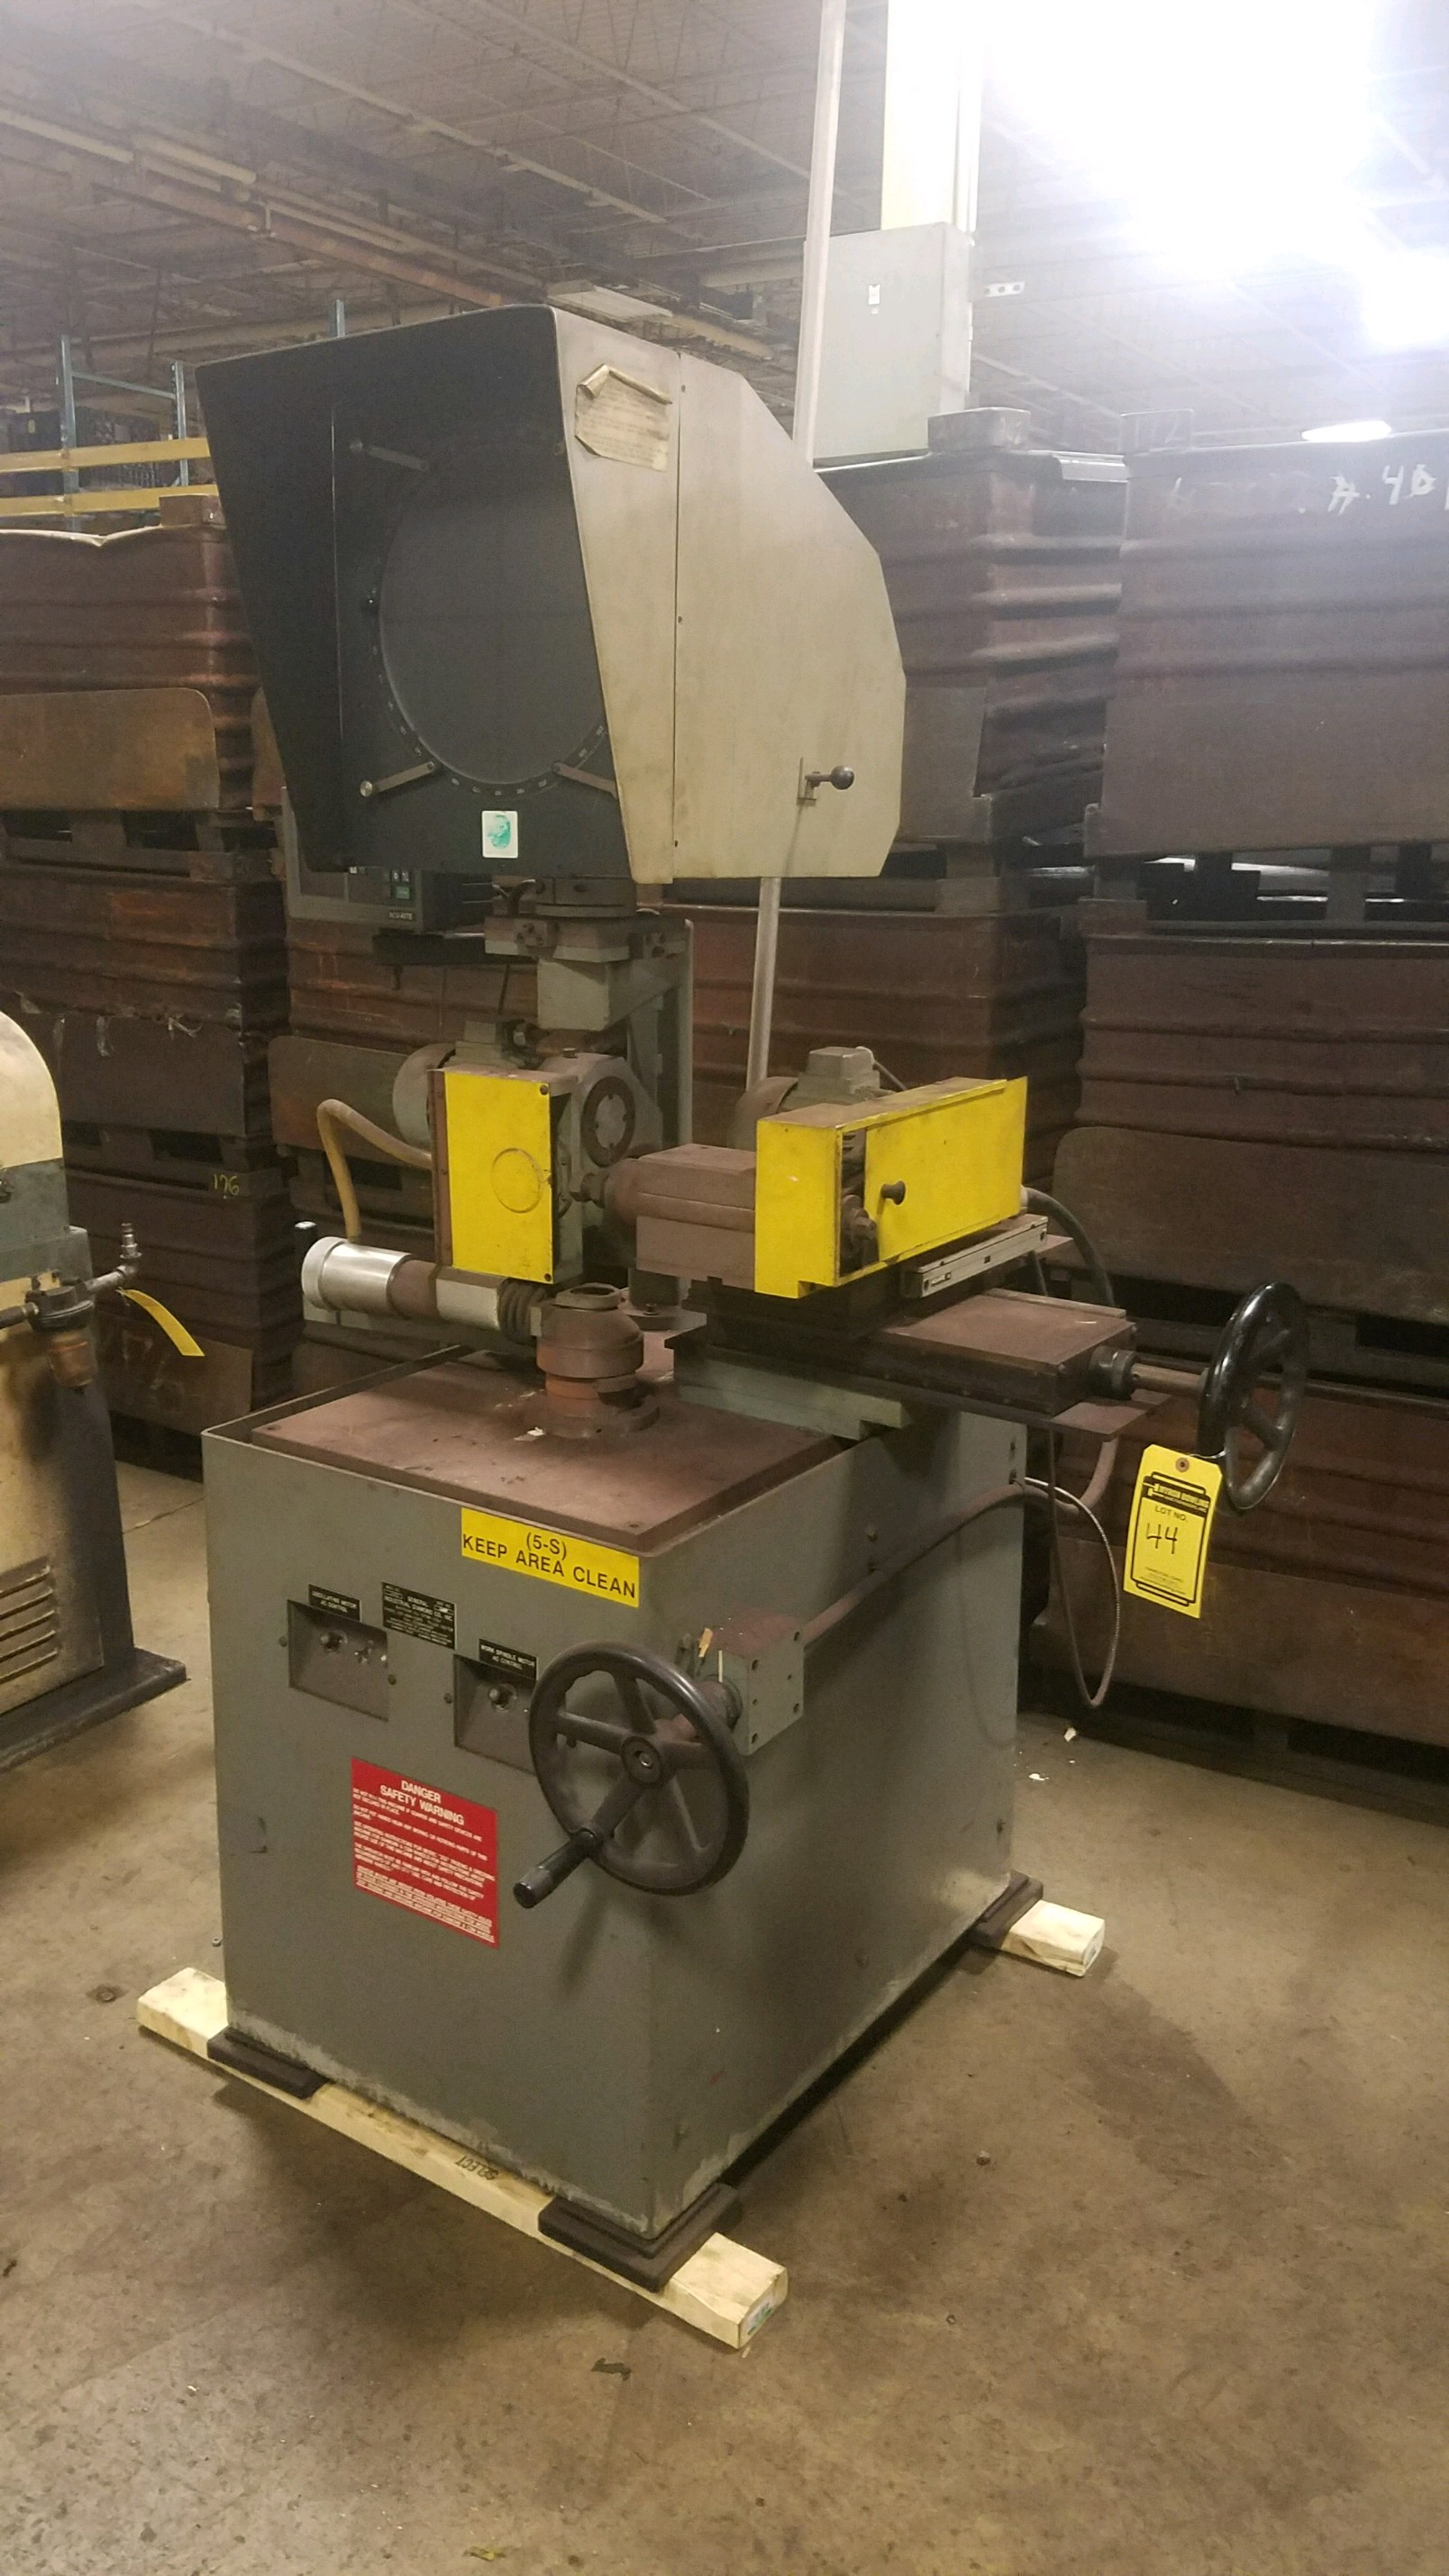 Lot 44 - GENERAL INDUSTRIAL DIAMOND LATHE/ OPTICAL COMPARATOR, MODEL 252, S/N 122894, SPINDLE CONTROL,